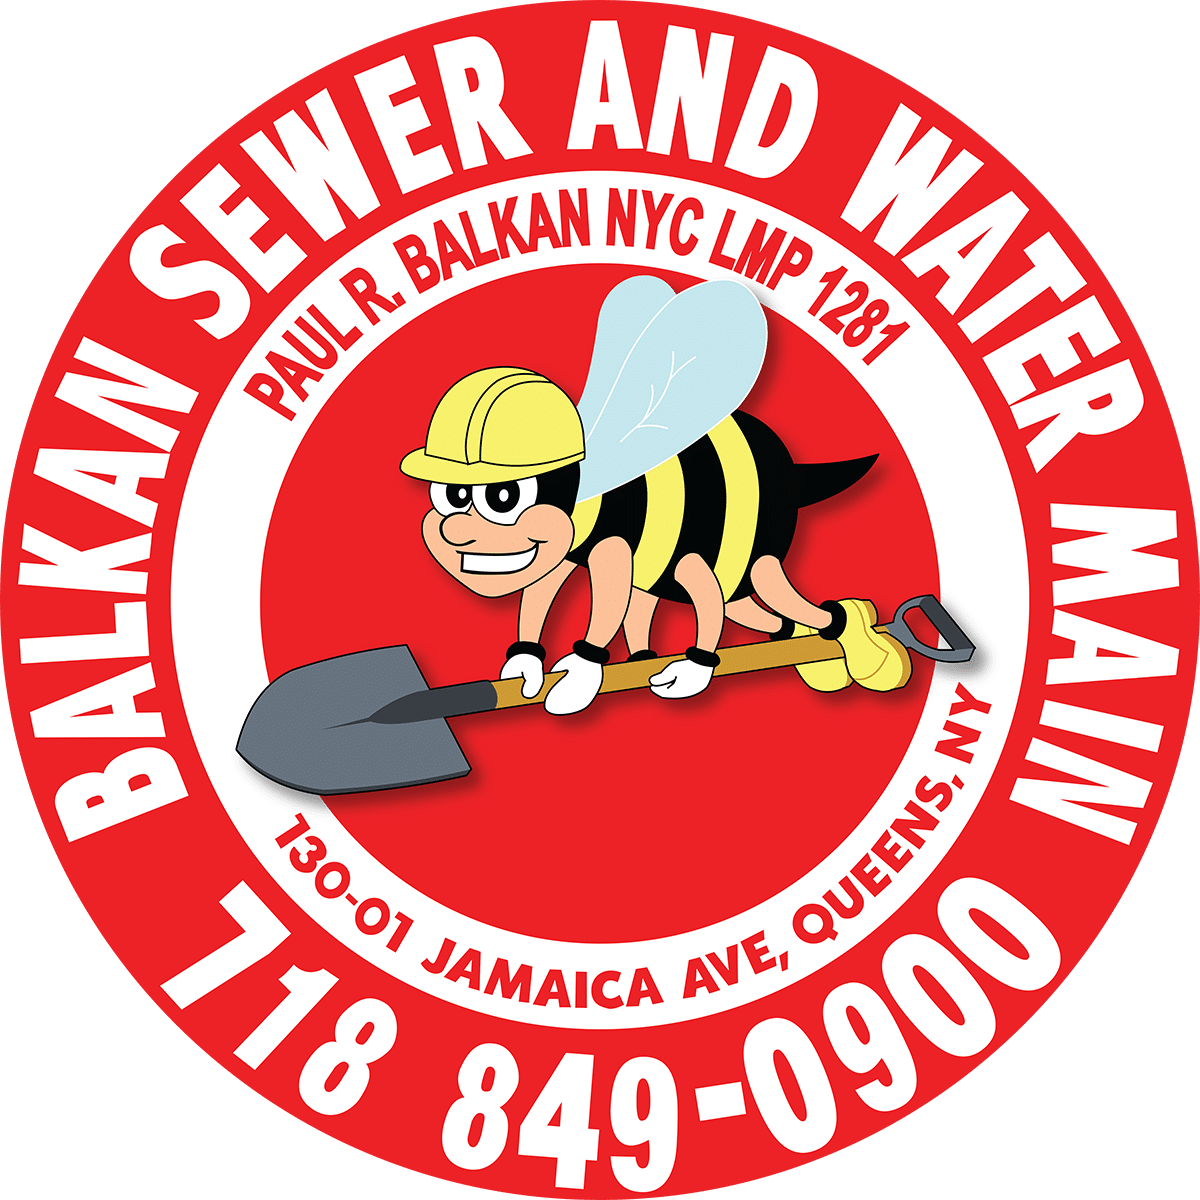 sewer-contractor-logo